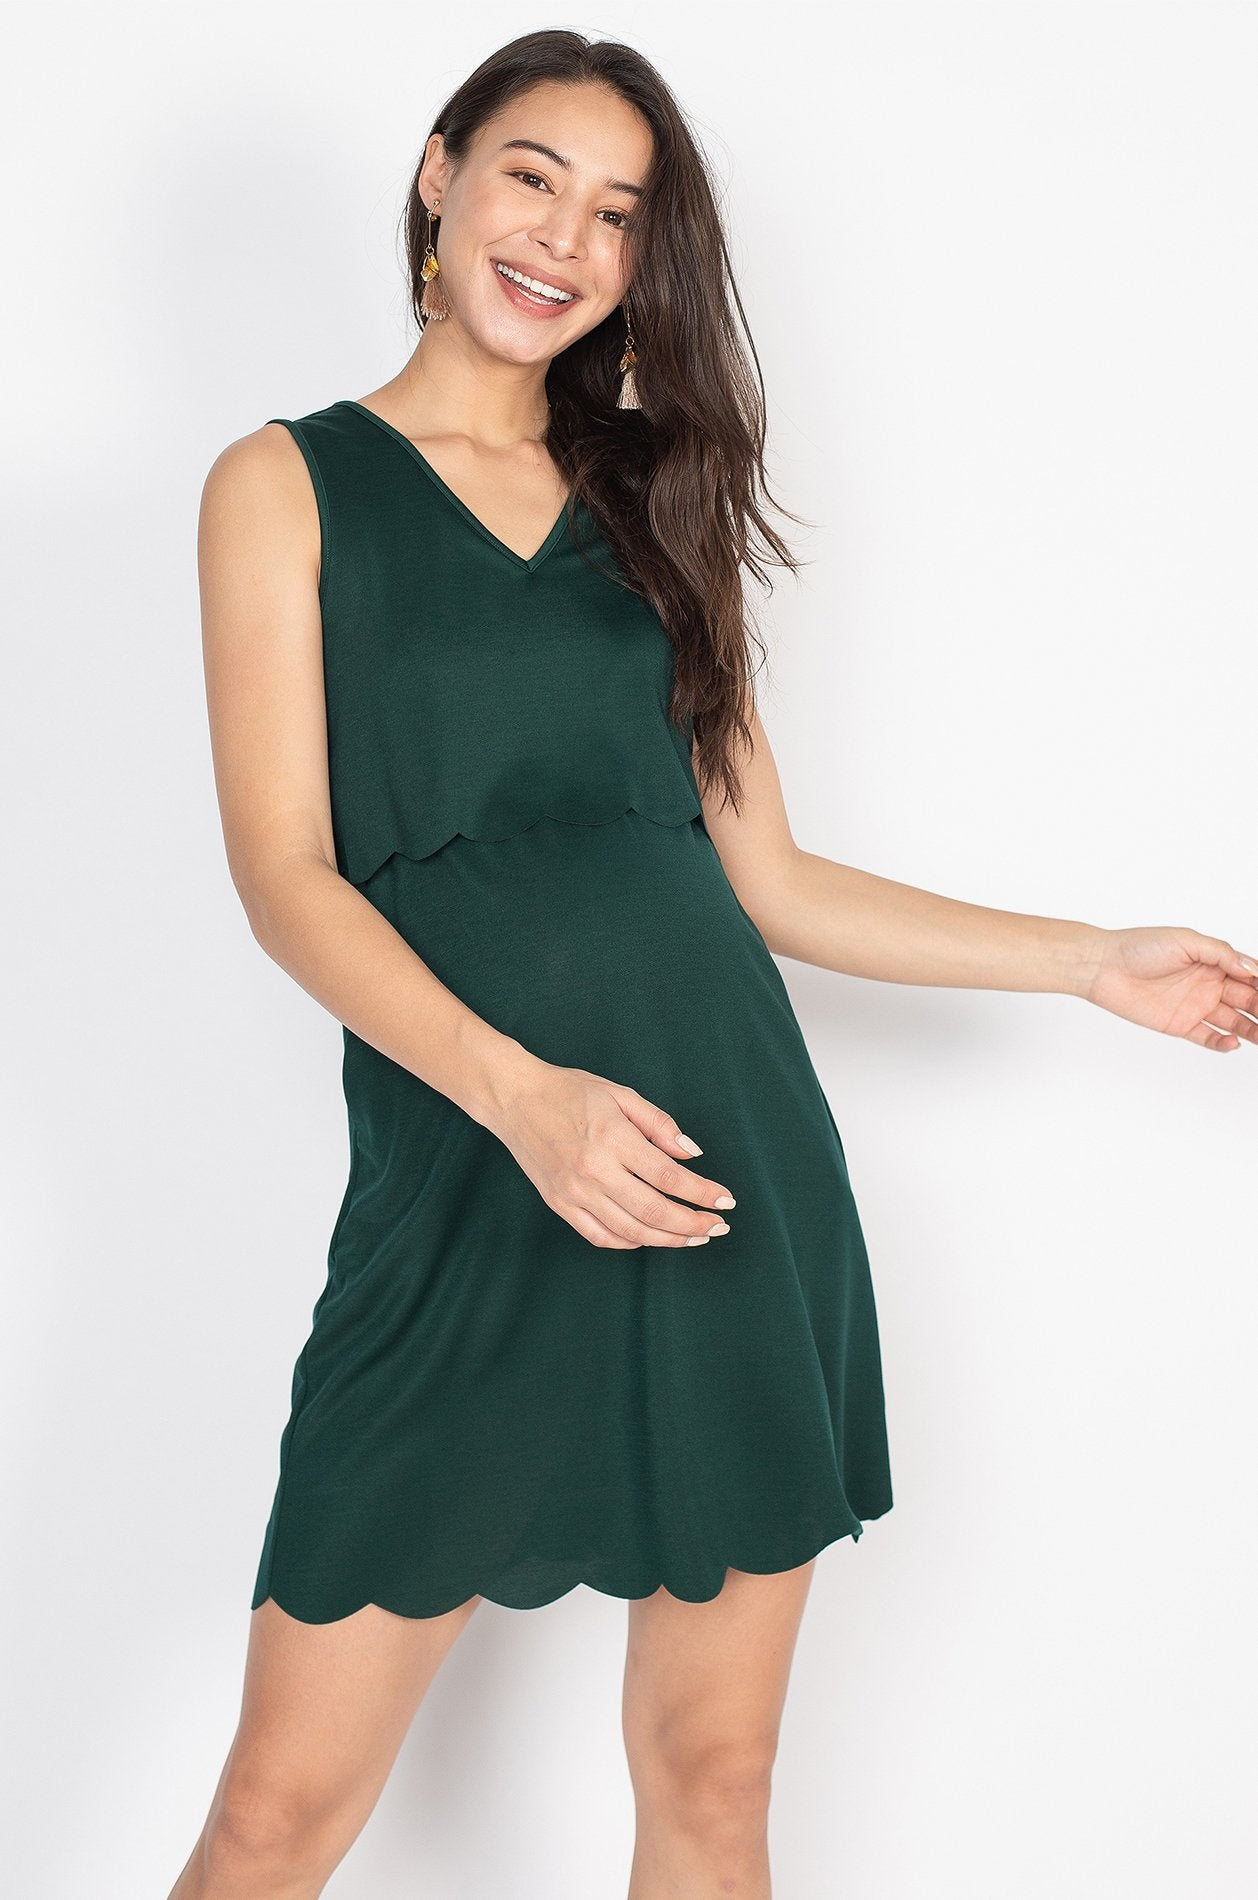 Elina Scallop Overlay Top Nursing Dress in Forest Green  by Jump Eat Cry - Maternity and nursing wear